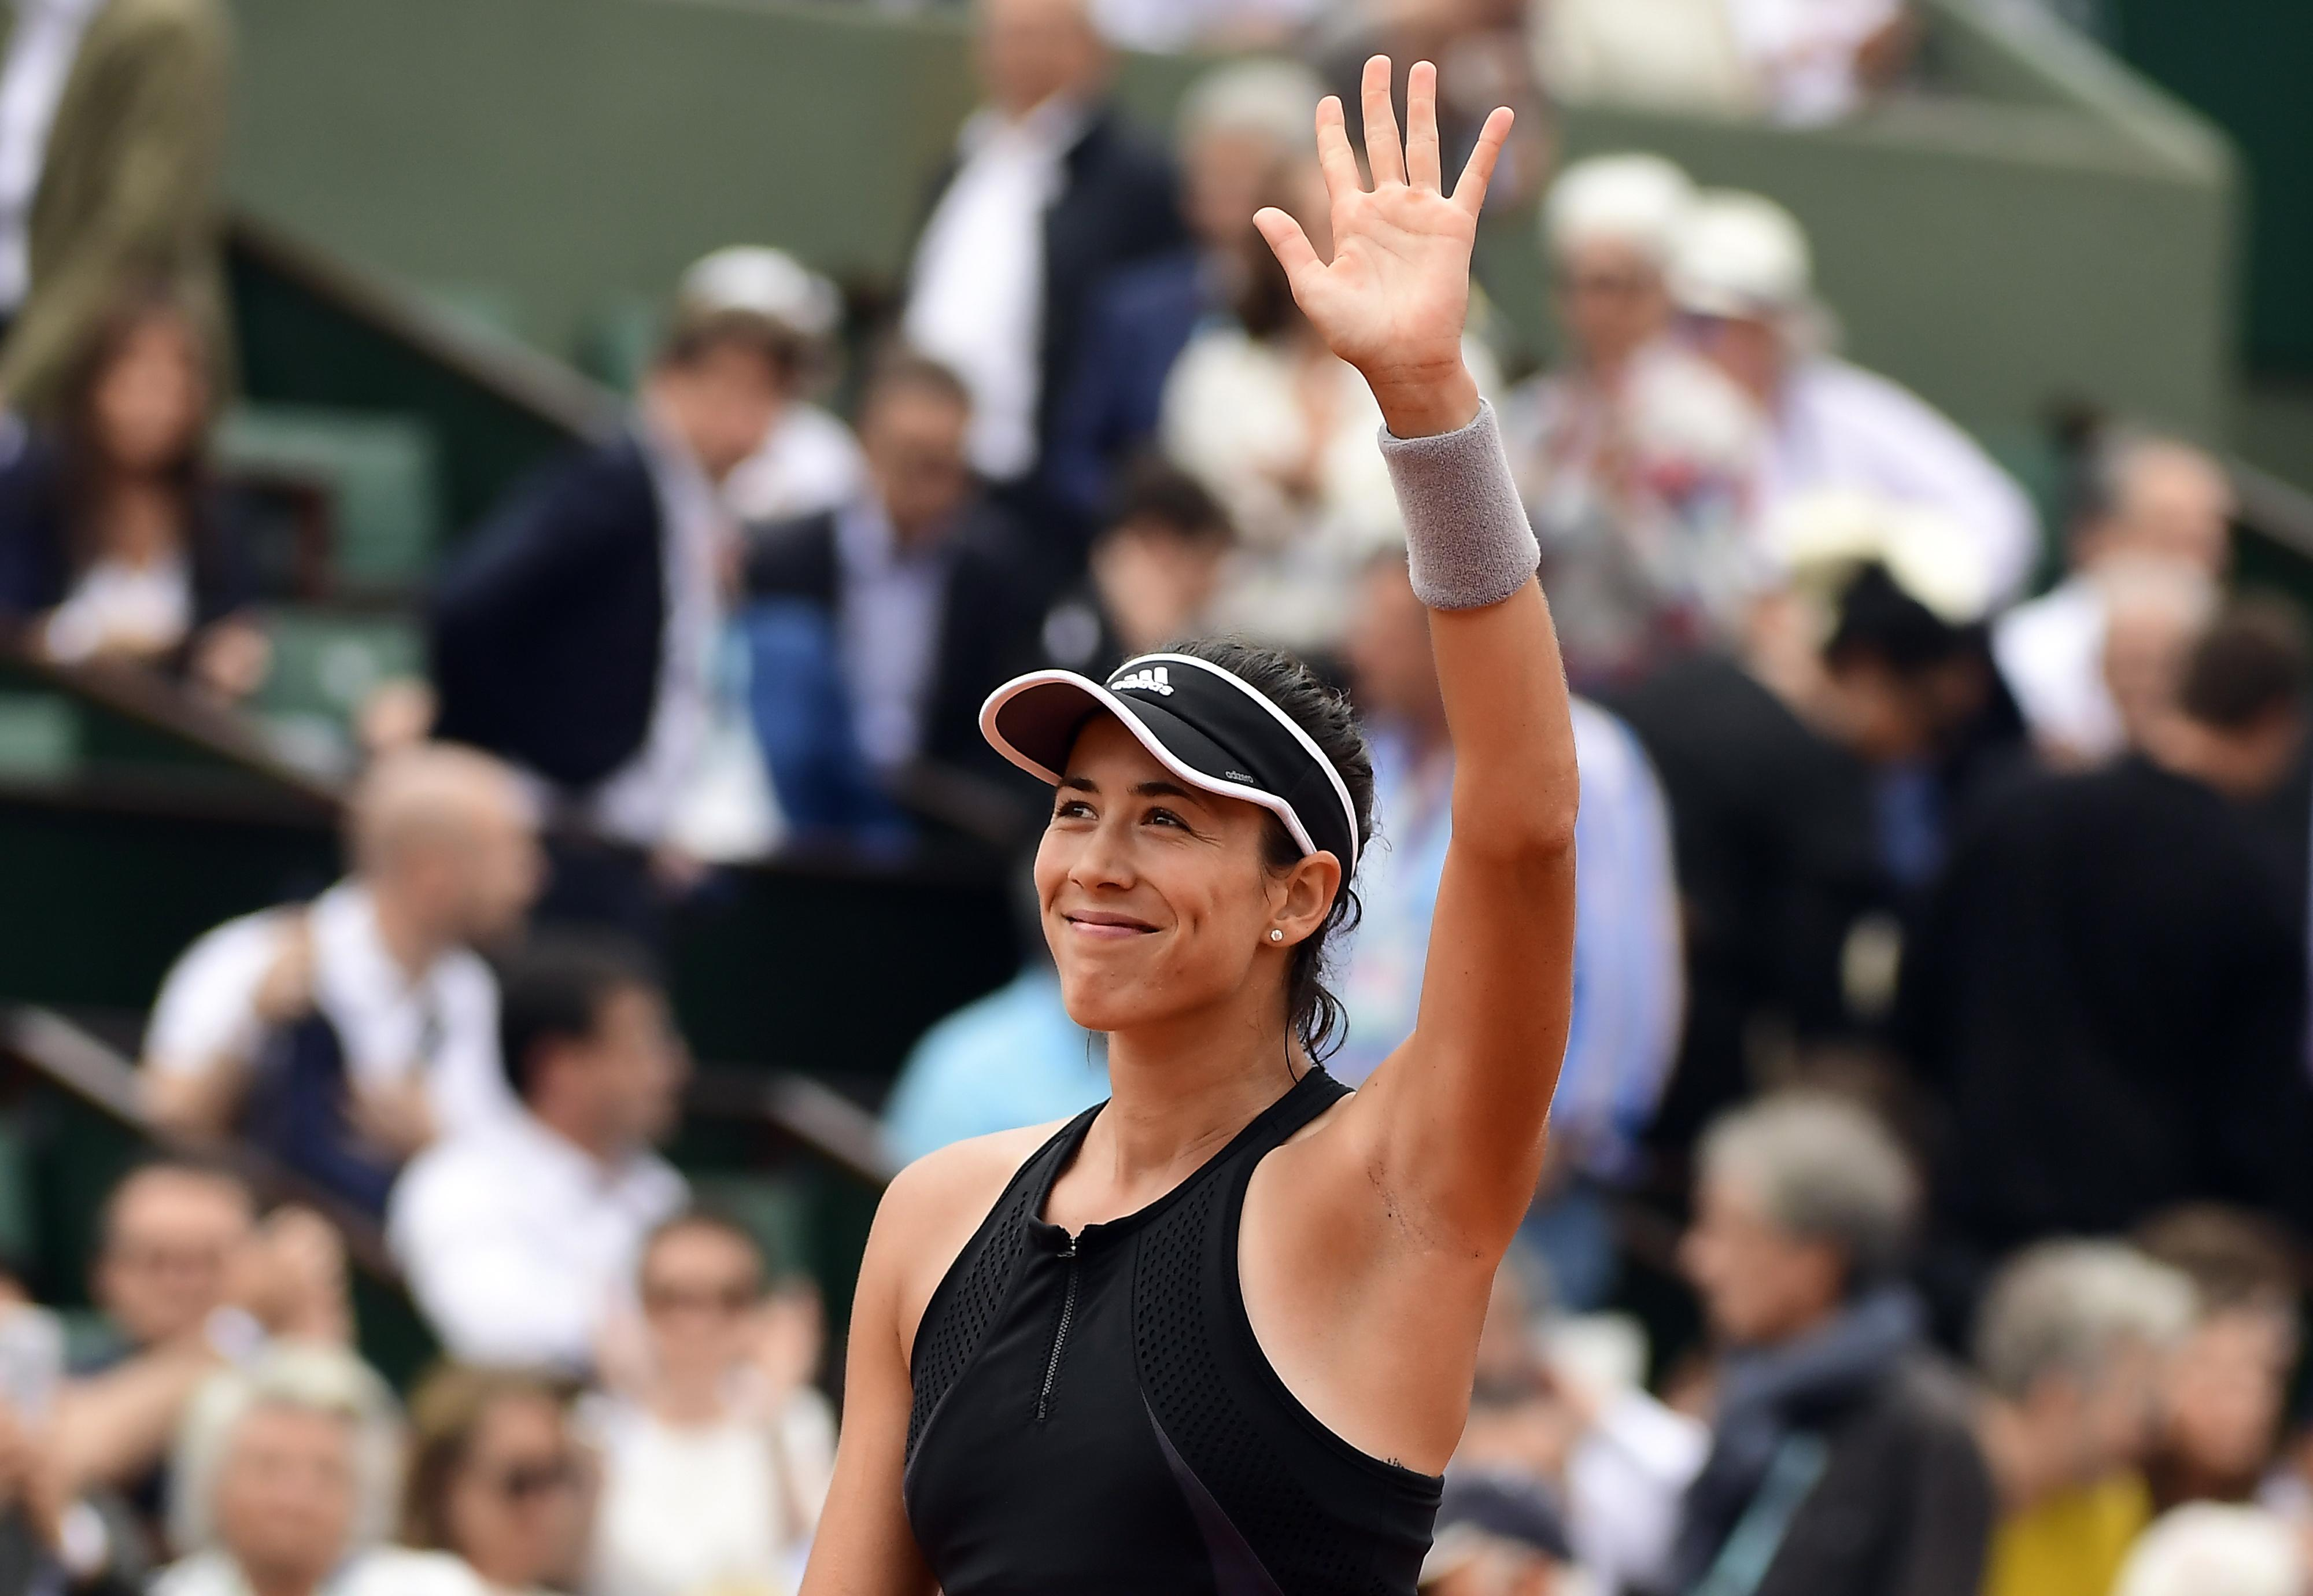 Reigning Wimbledon champion Muguruza is in the semi-finals of the French Open